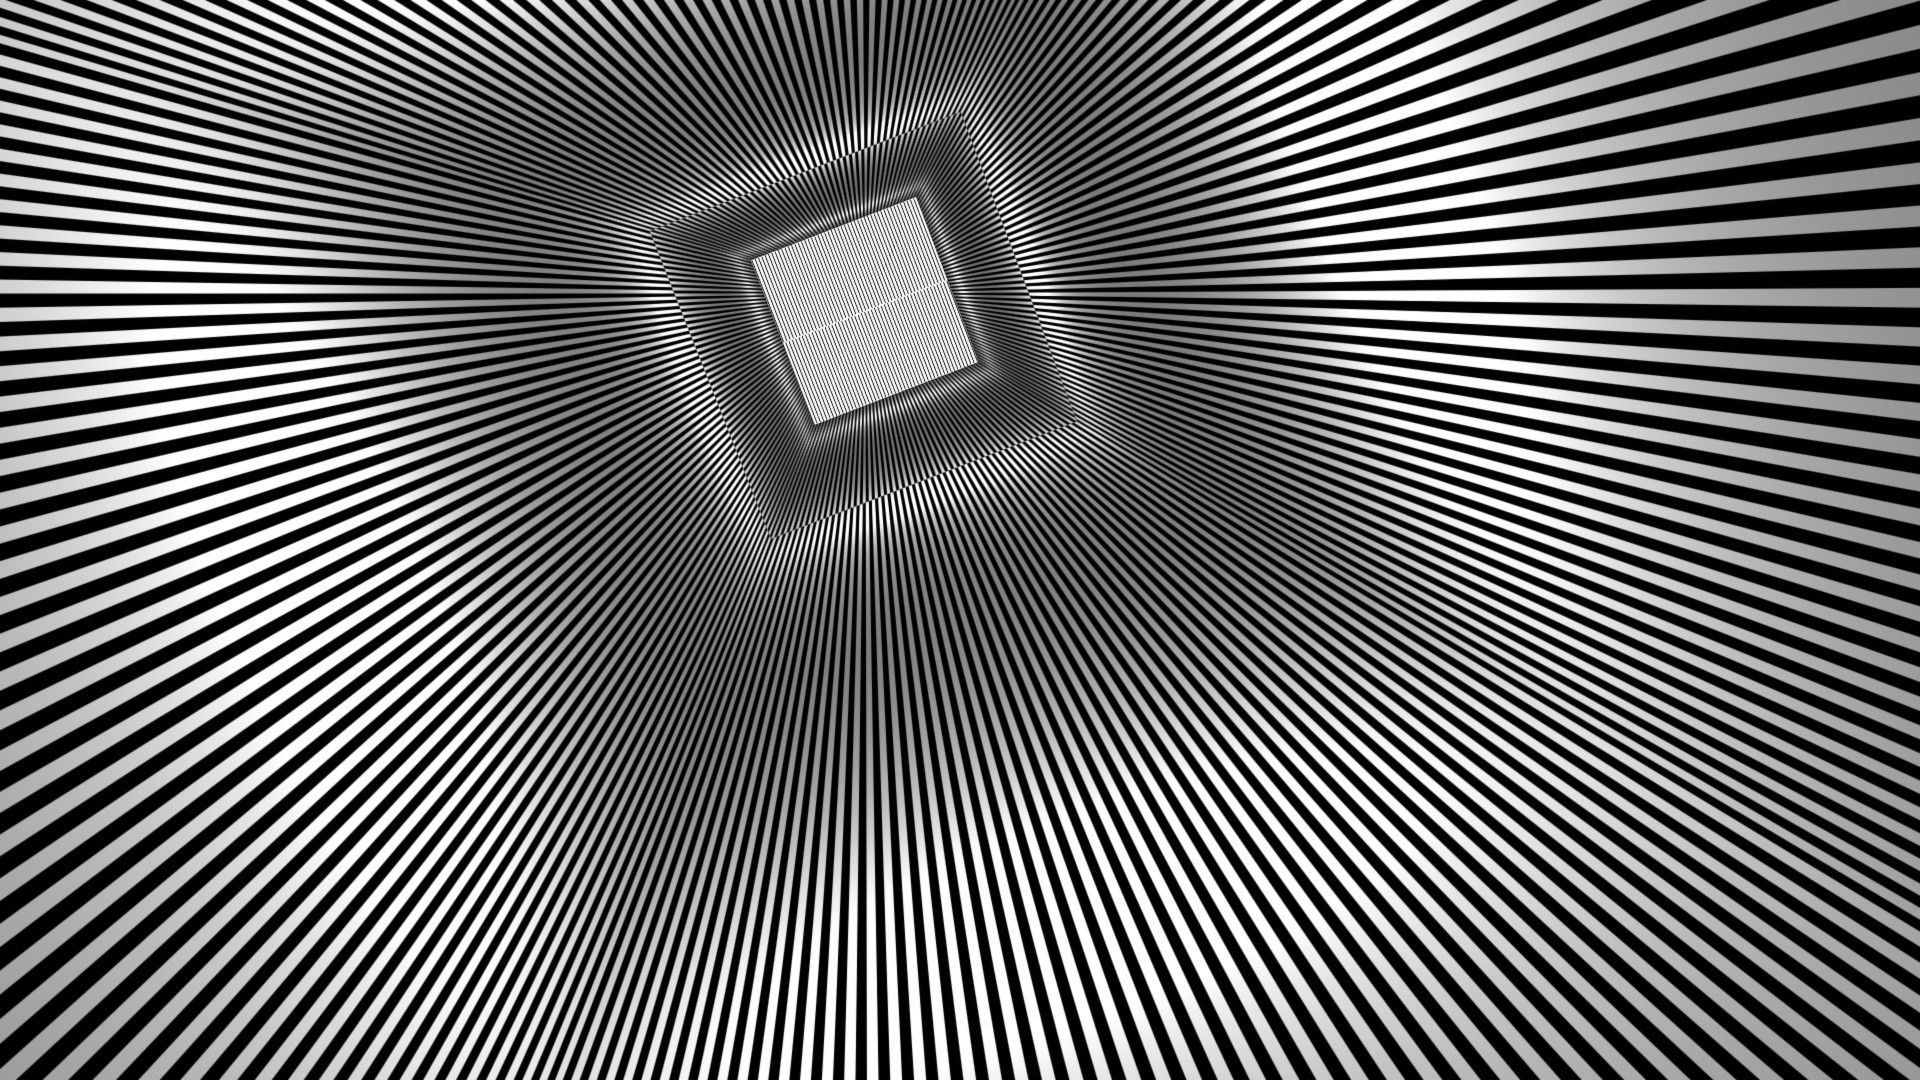 Black and White Abstract Wallpapers (73+ images)